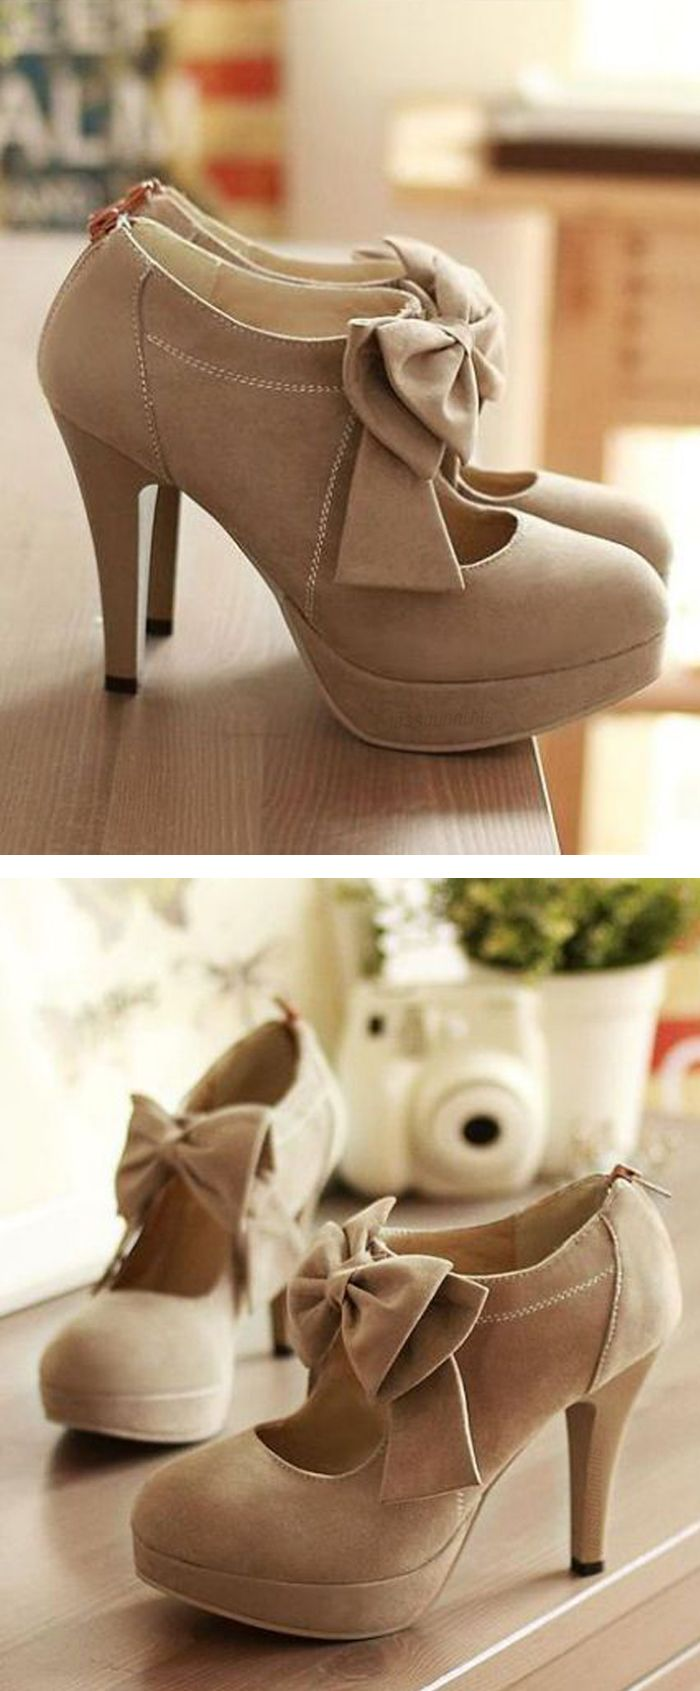 Cute bow Mary Jane pumps